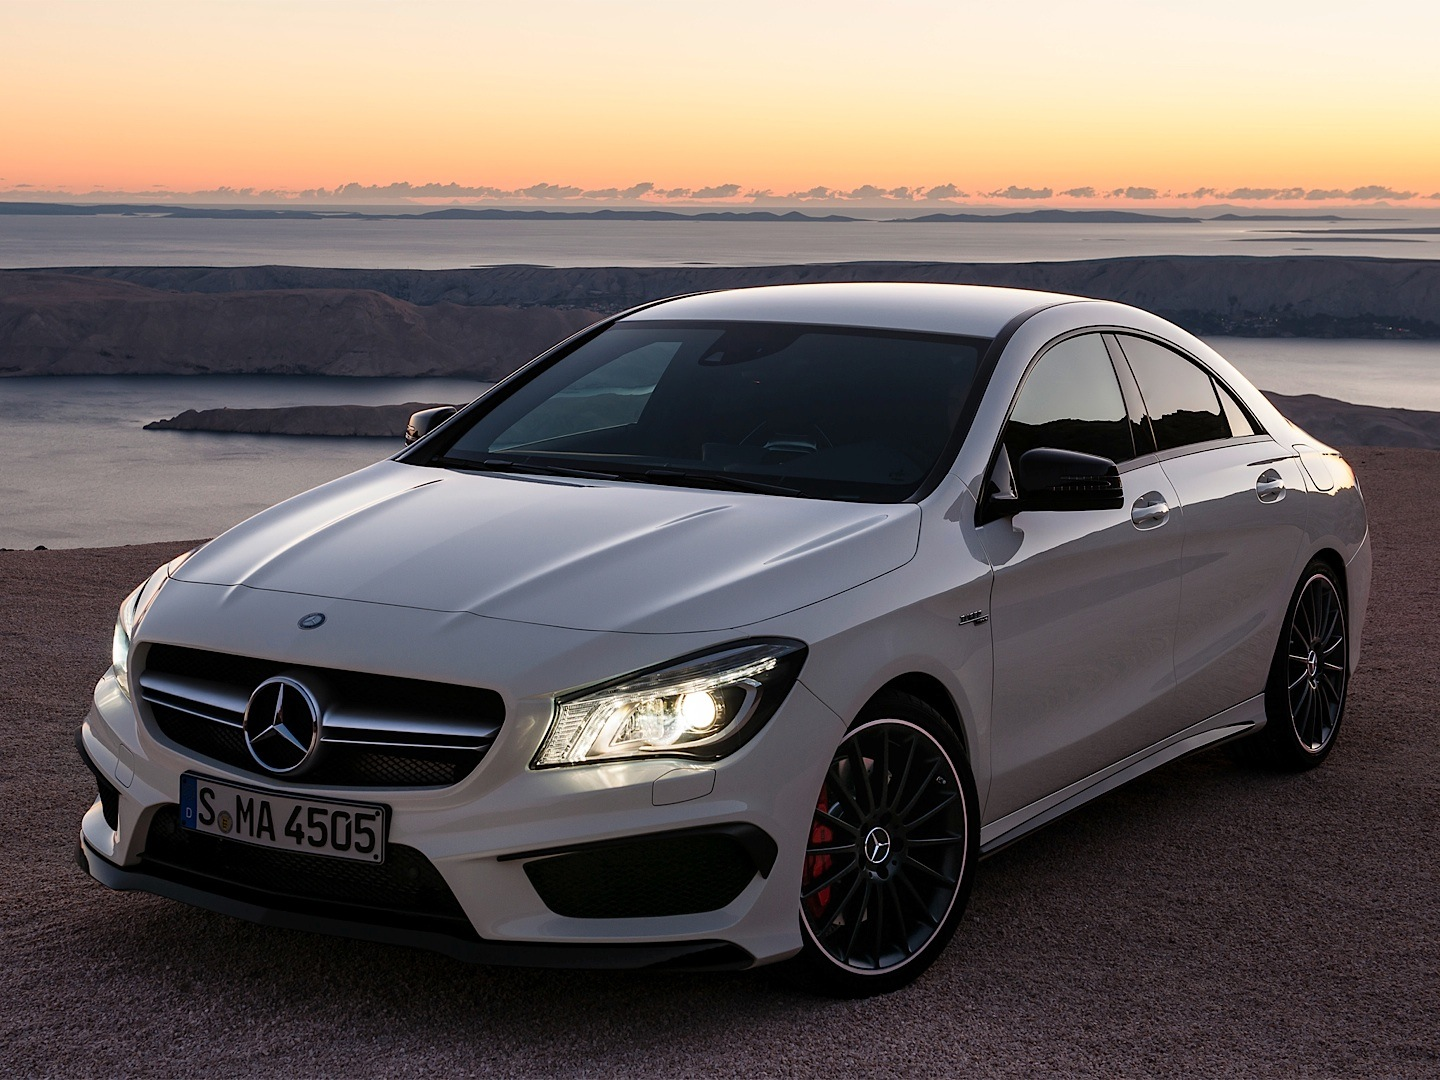 mercedes benz cla 45 amg driven by vadimauto autoevolution. Cars Review. Best American Auto & Cars Review